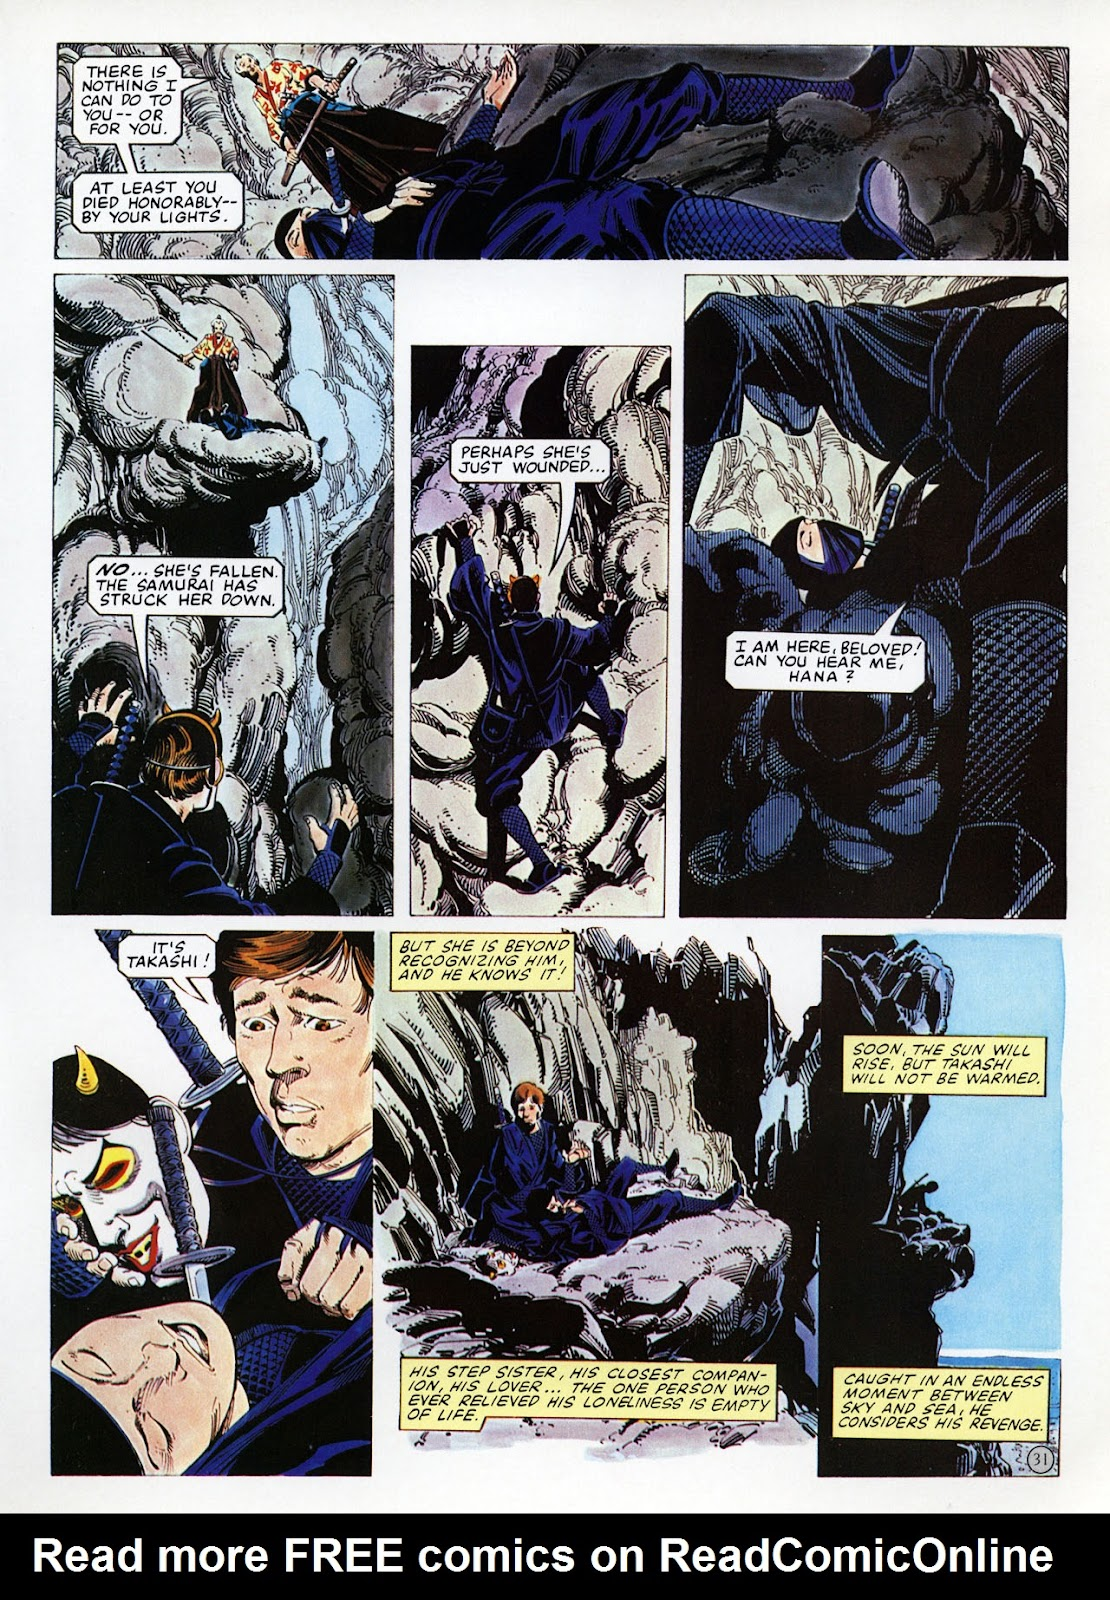 Read online Epic Graphic Novel: Last of the Dragons comic -  Issue # Full - 32